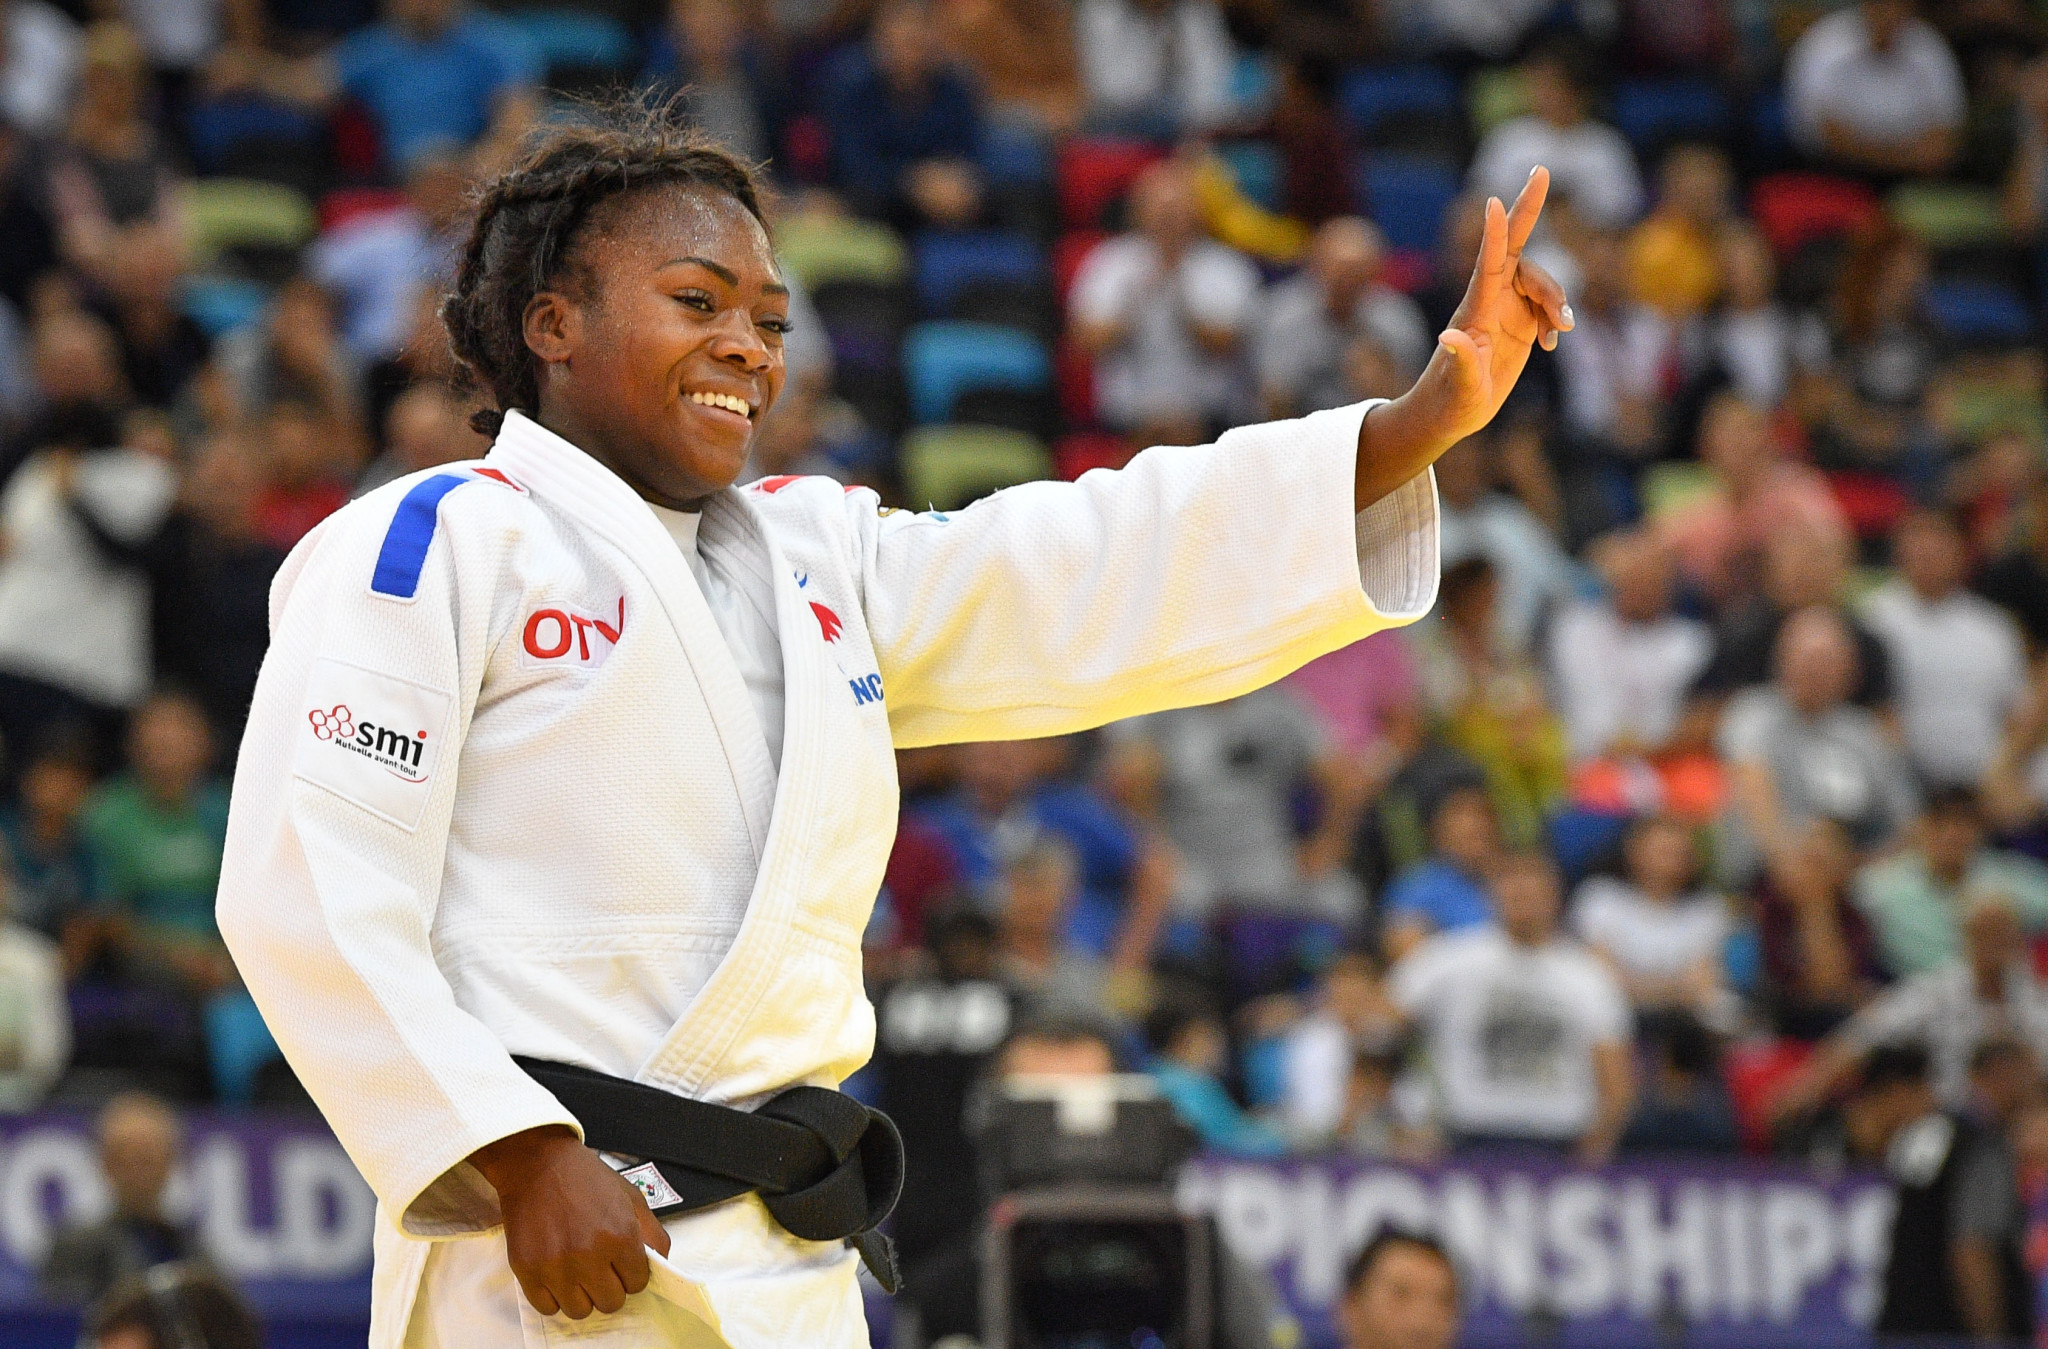 Agbegnenou becomes three-time world judo champion as Iran celebrates first gold medal since 2003